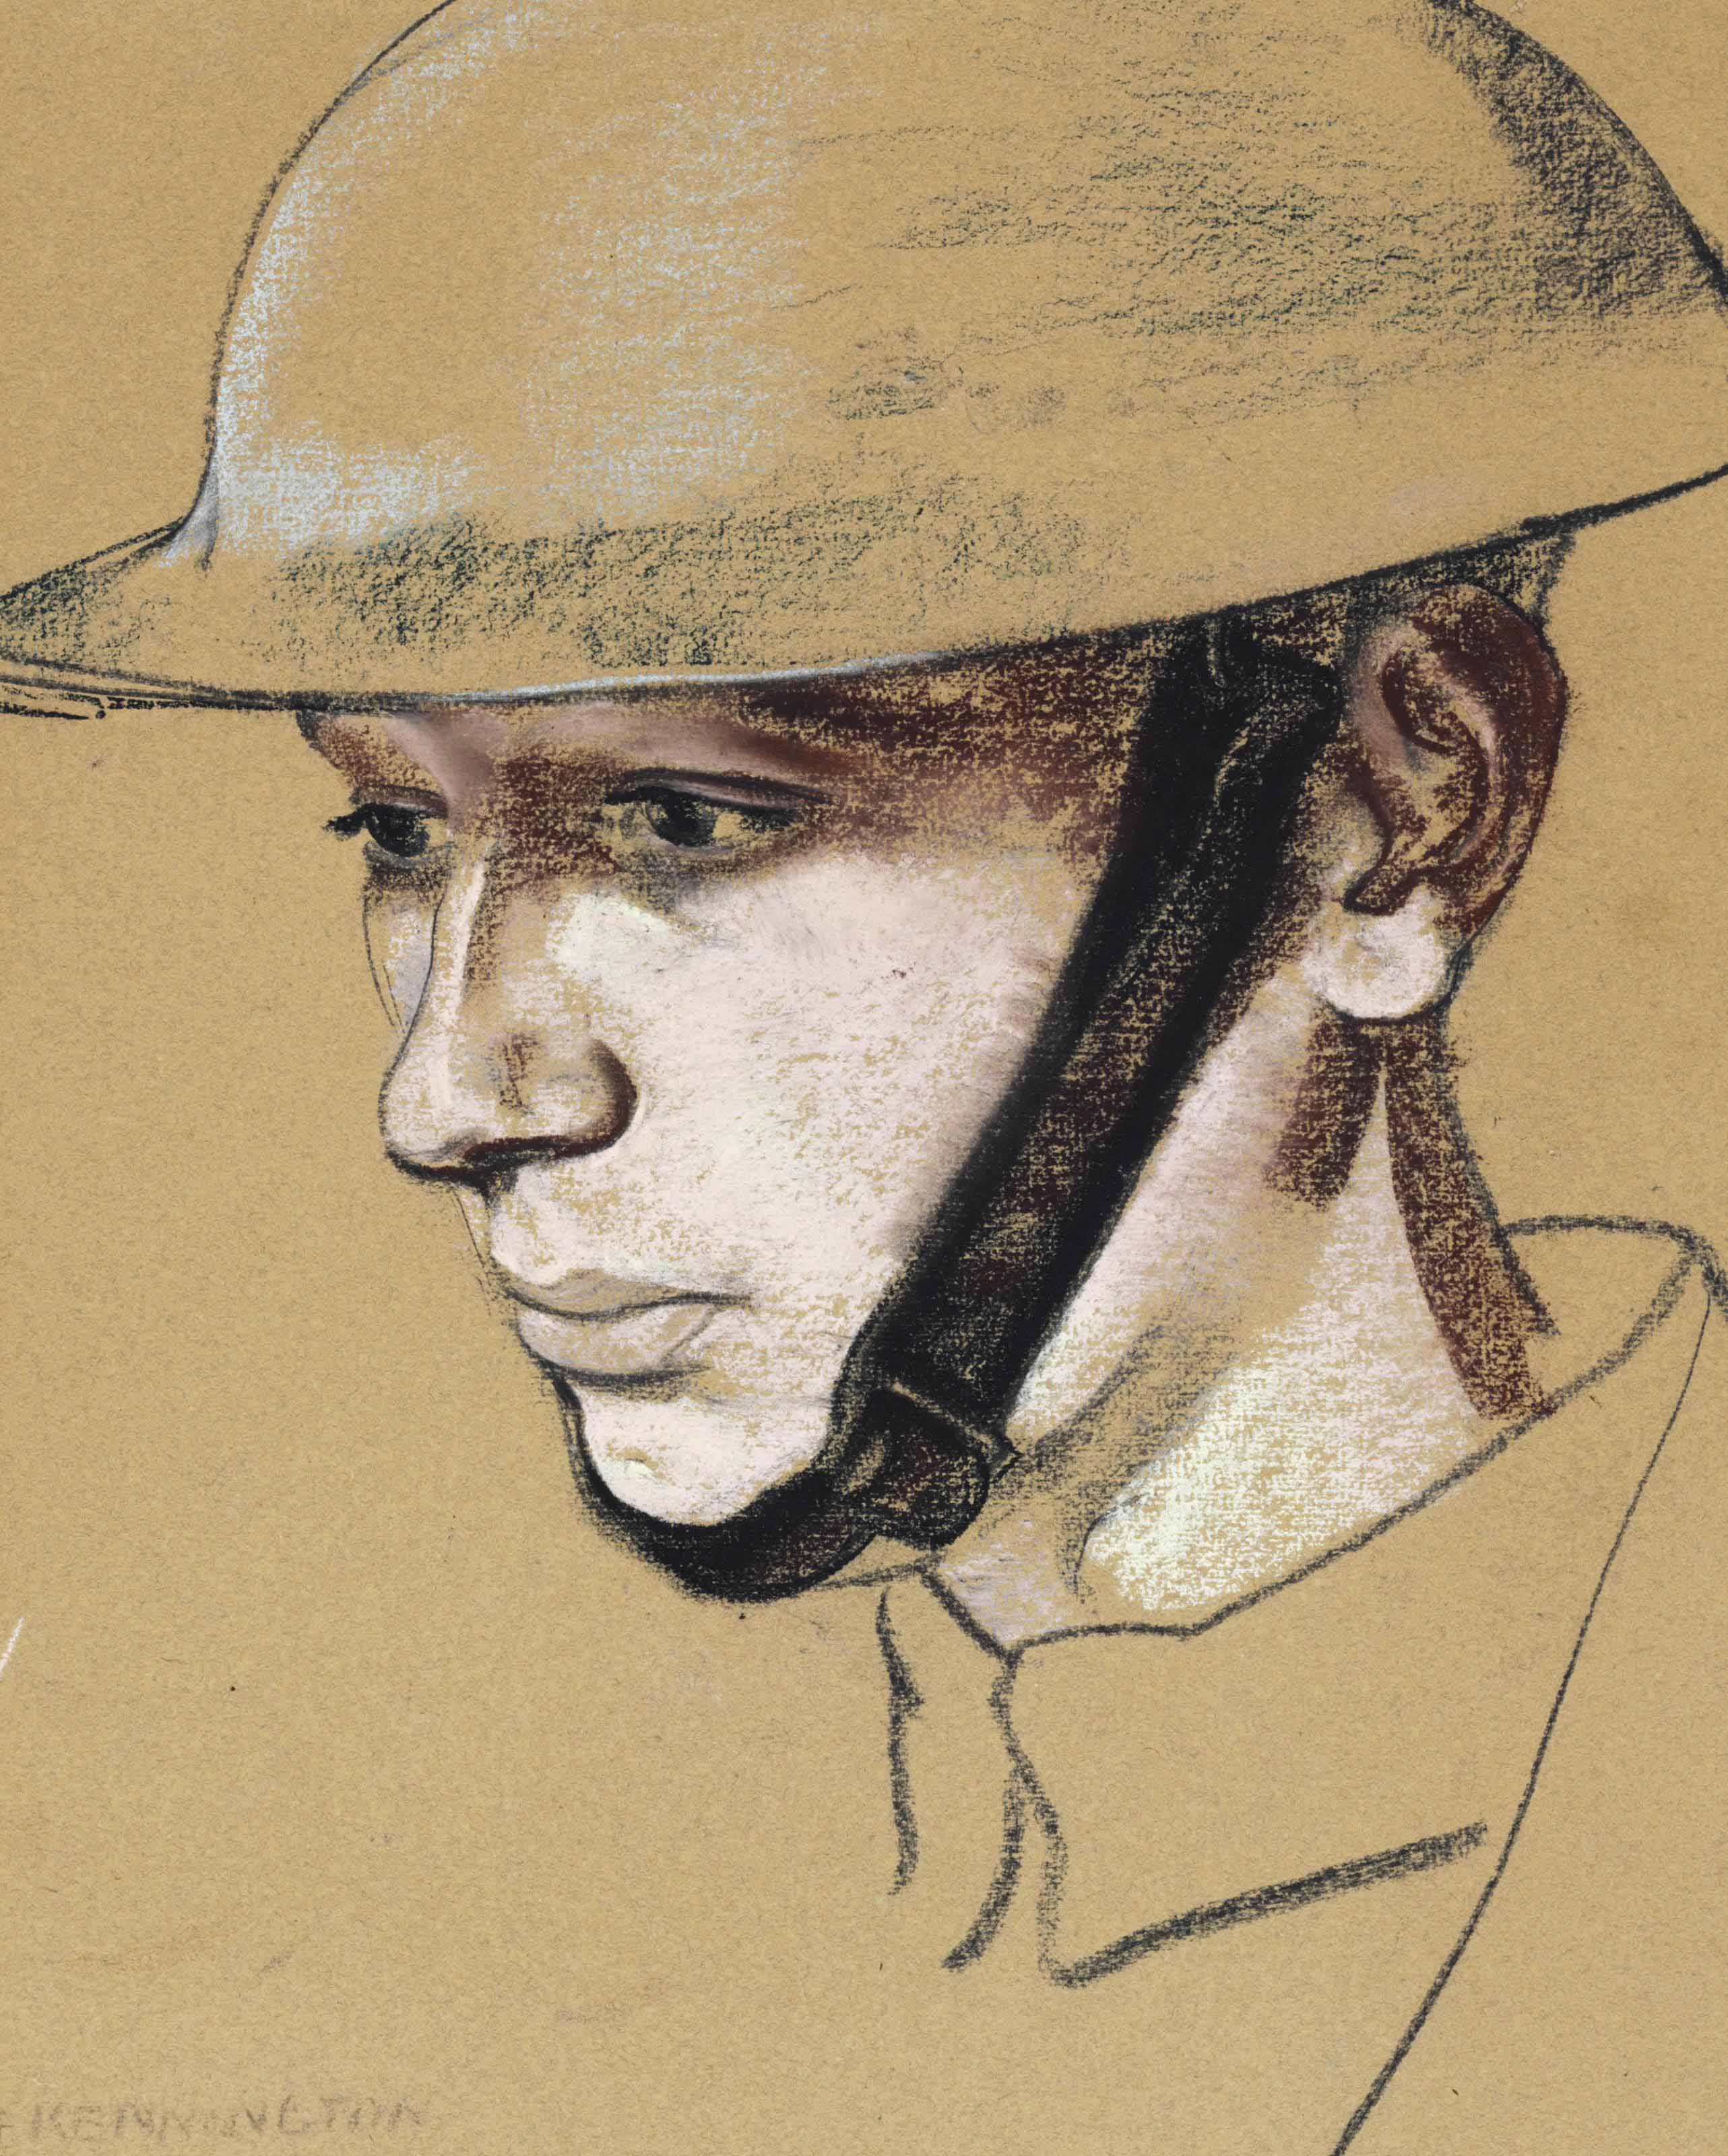 """KENNINGTON, Eric, R.A. (1888-1960). Portrait of a Soldier. Charcoal and pastel on paper, signed at lower left """"E. KENNINGTON."""" 15 x 12 inches. Framed. Provenance: Siegfried Sassoon (1886-1967); and by descent; sold Christie's King Street 6 June 2007, lot 105."""